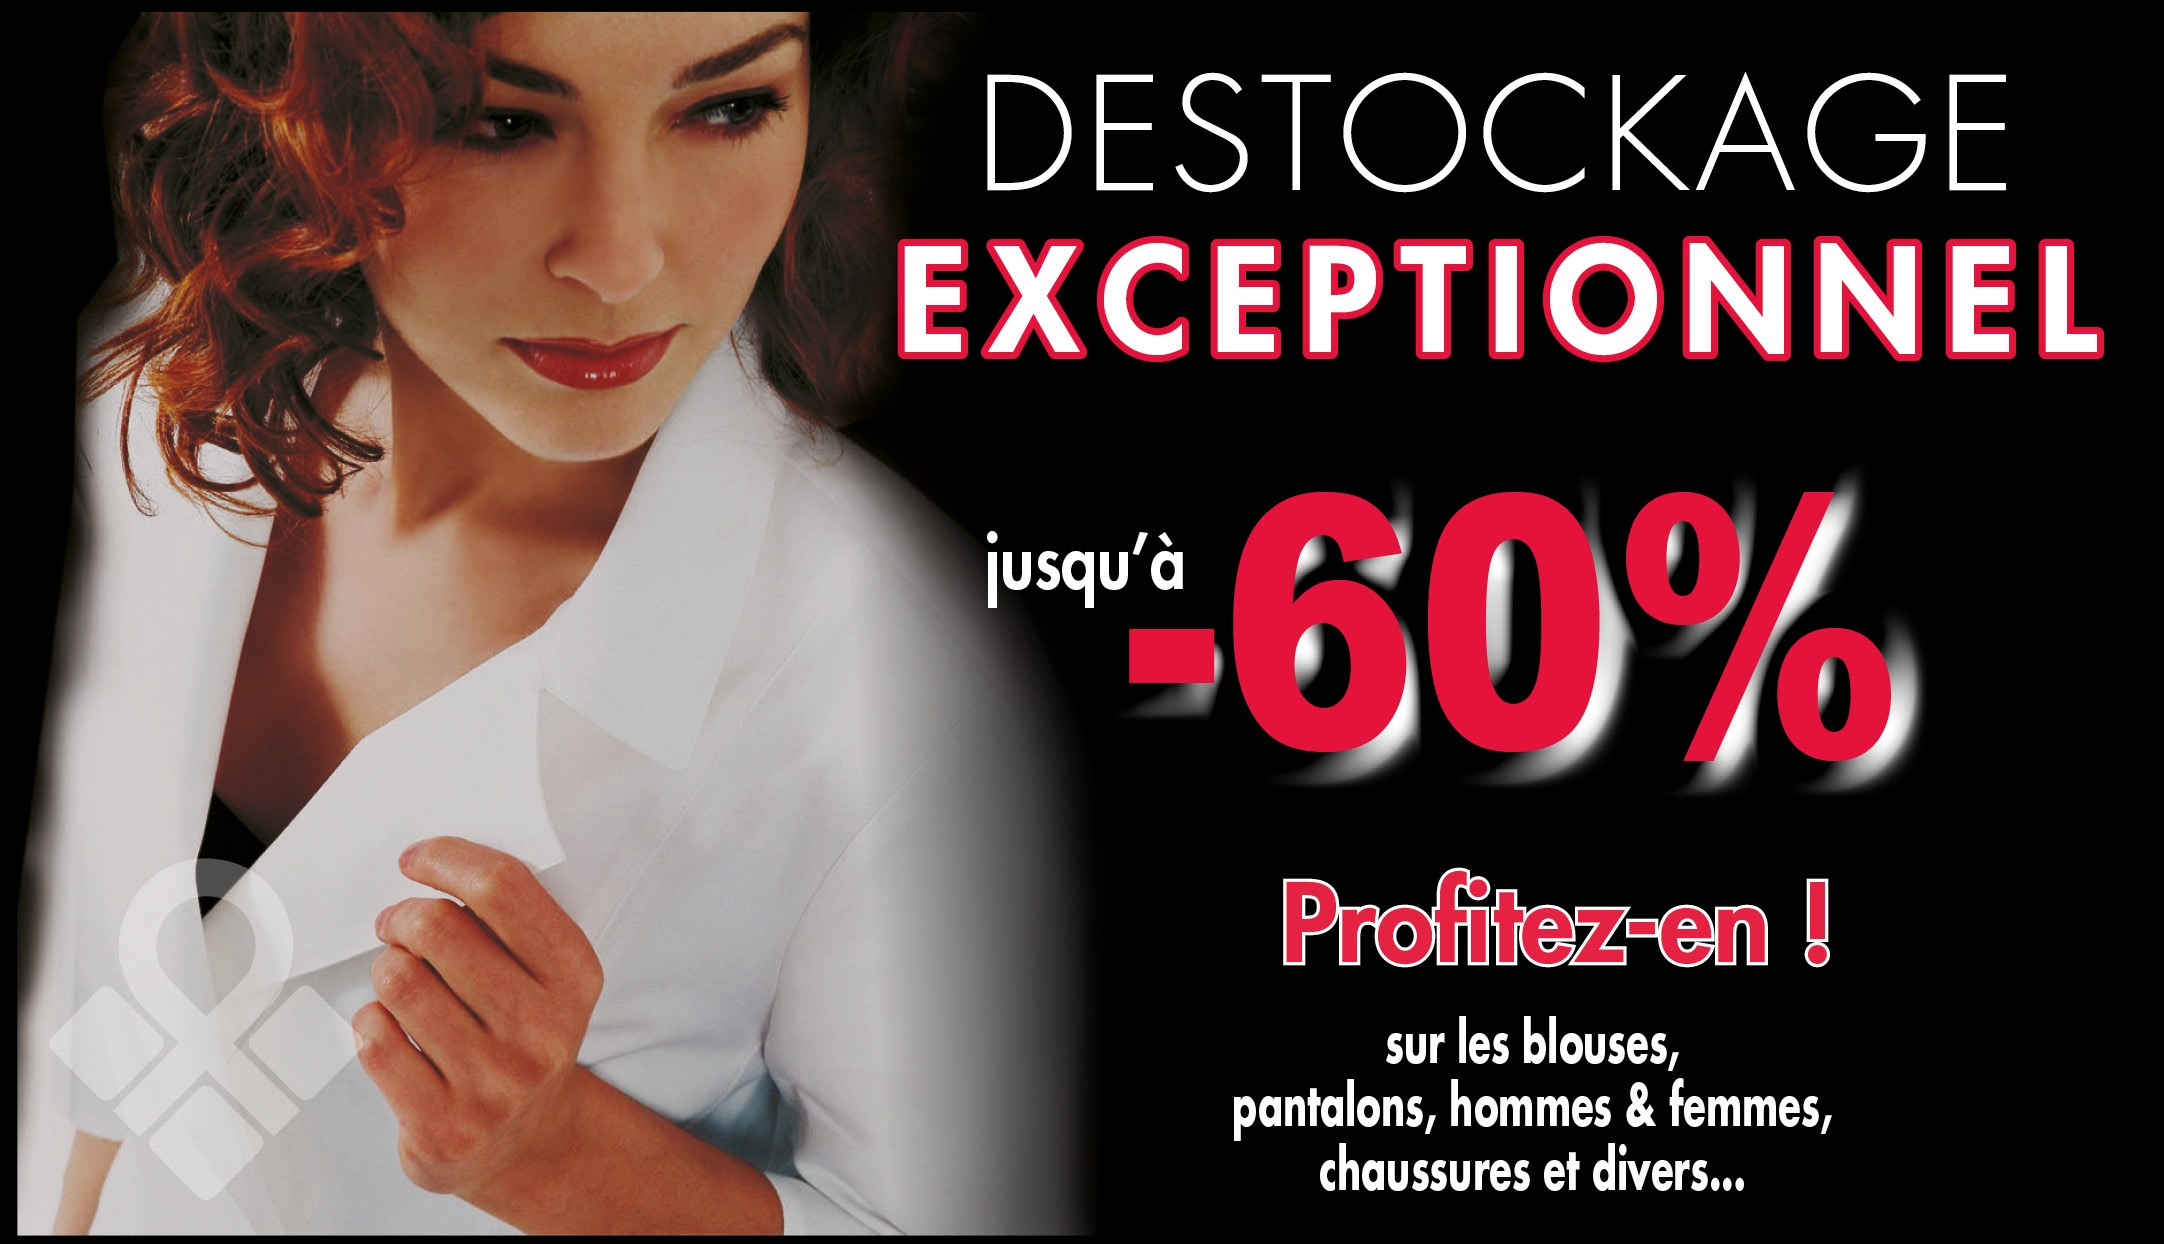 Destockage exceptionnel 2018